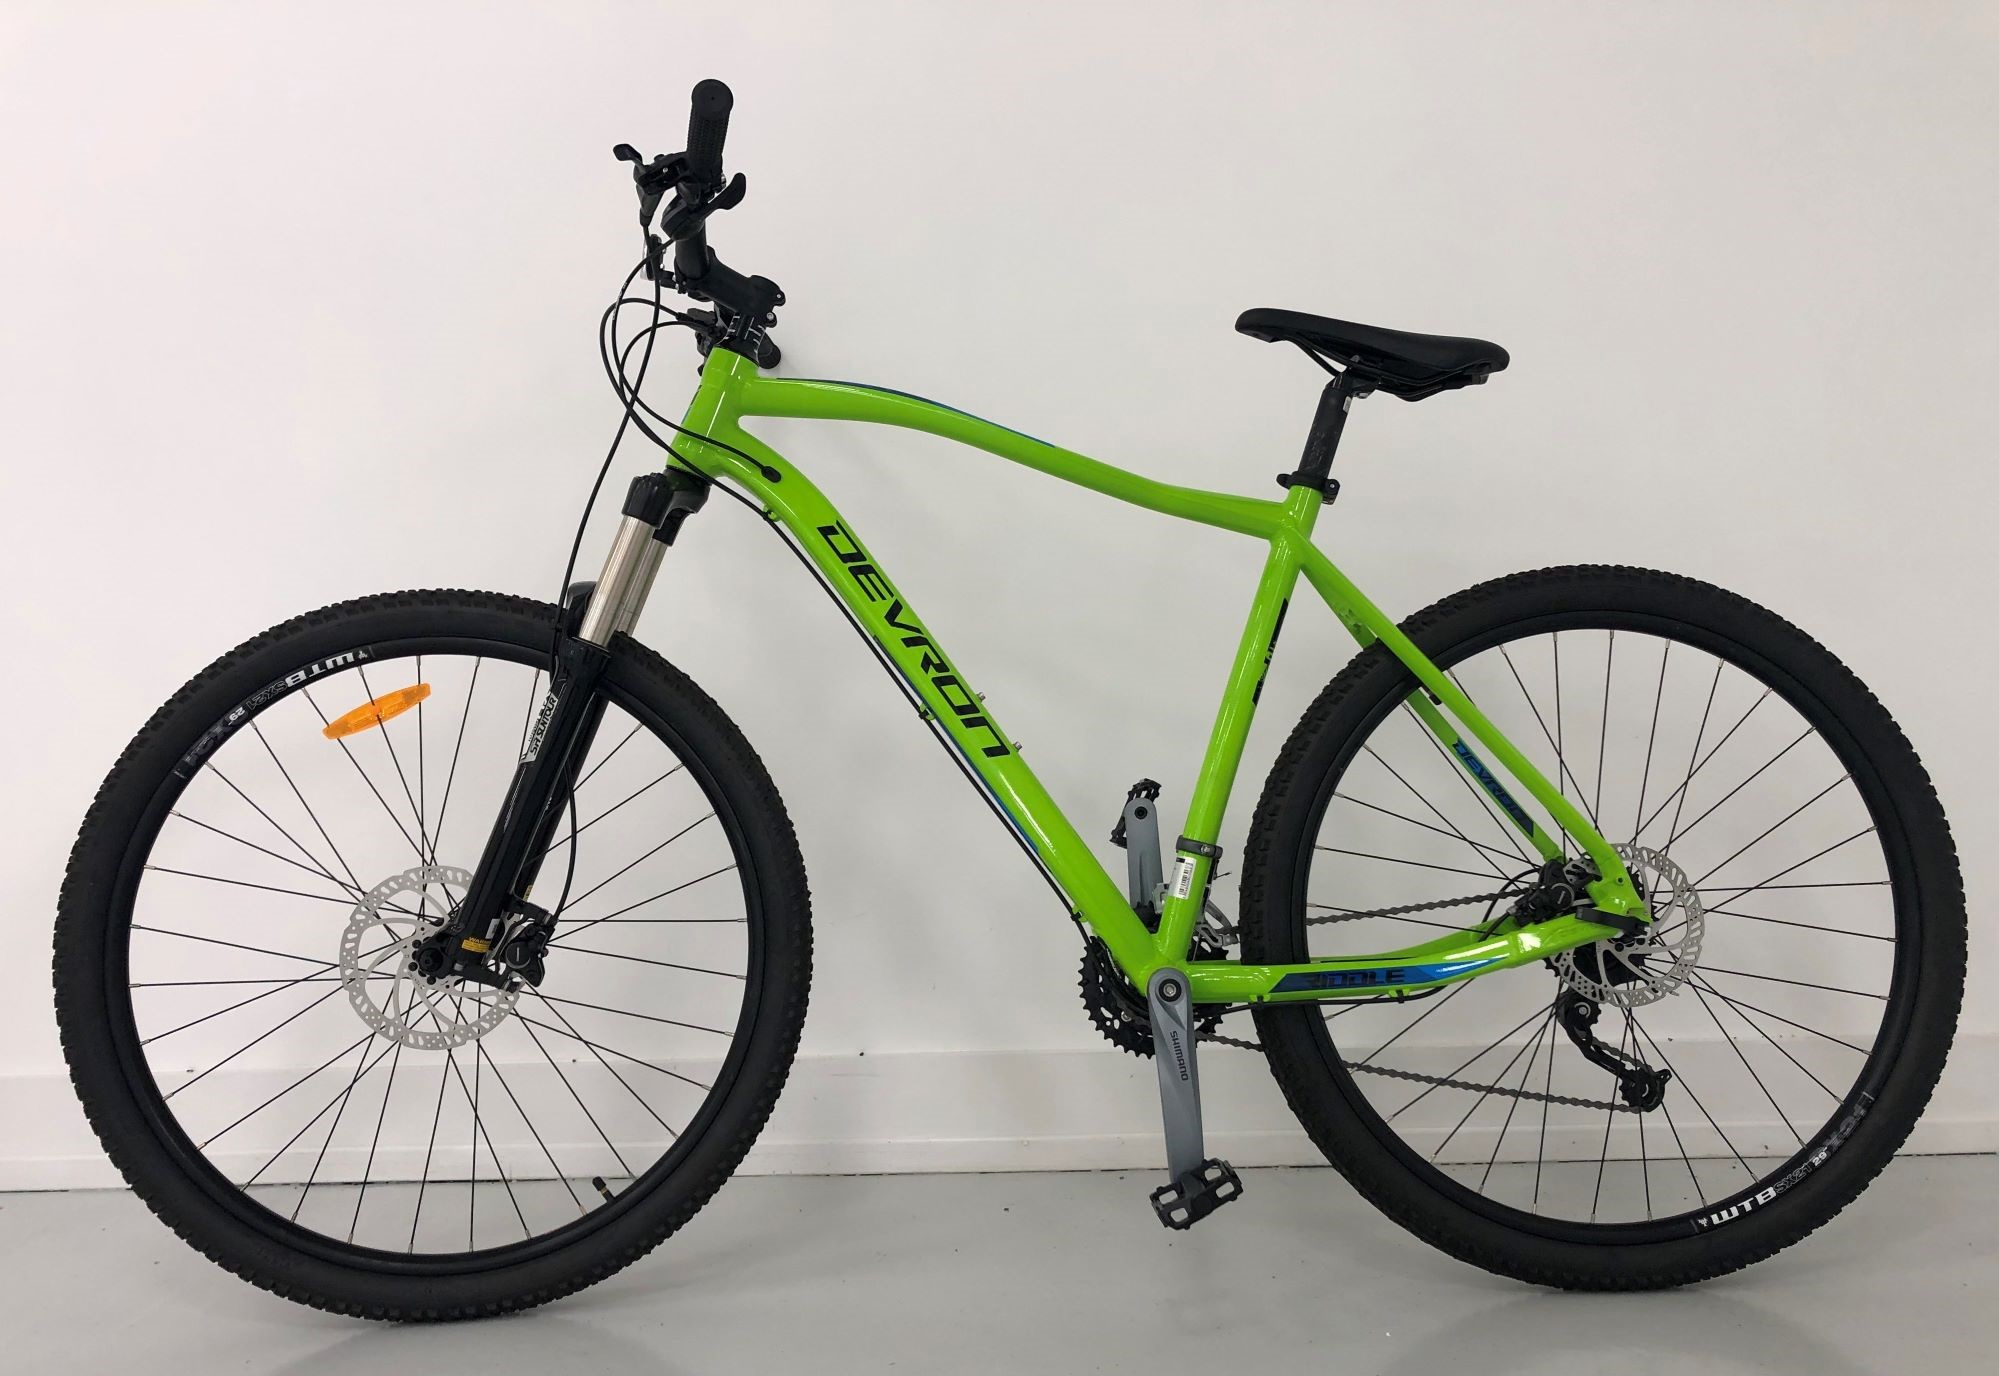 Devron Riddle Mountain Bike 29 Inch Green (2) - County Taunton